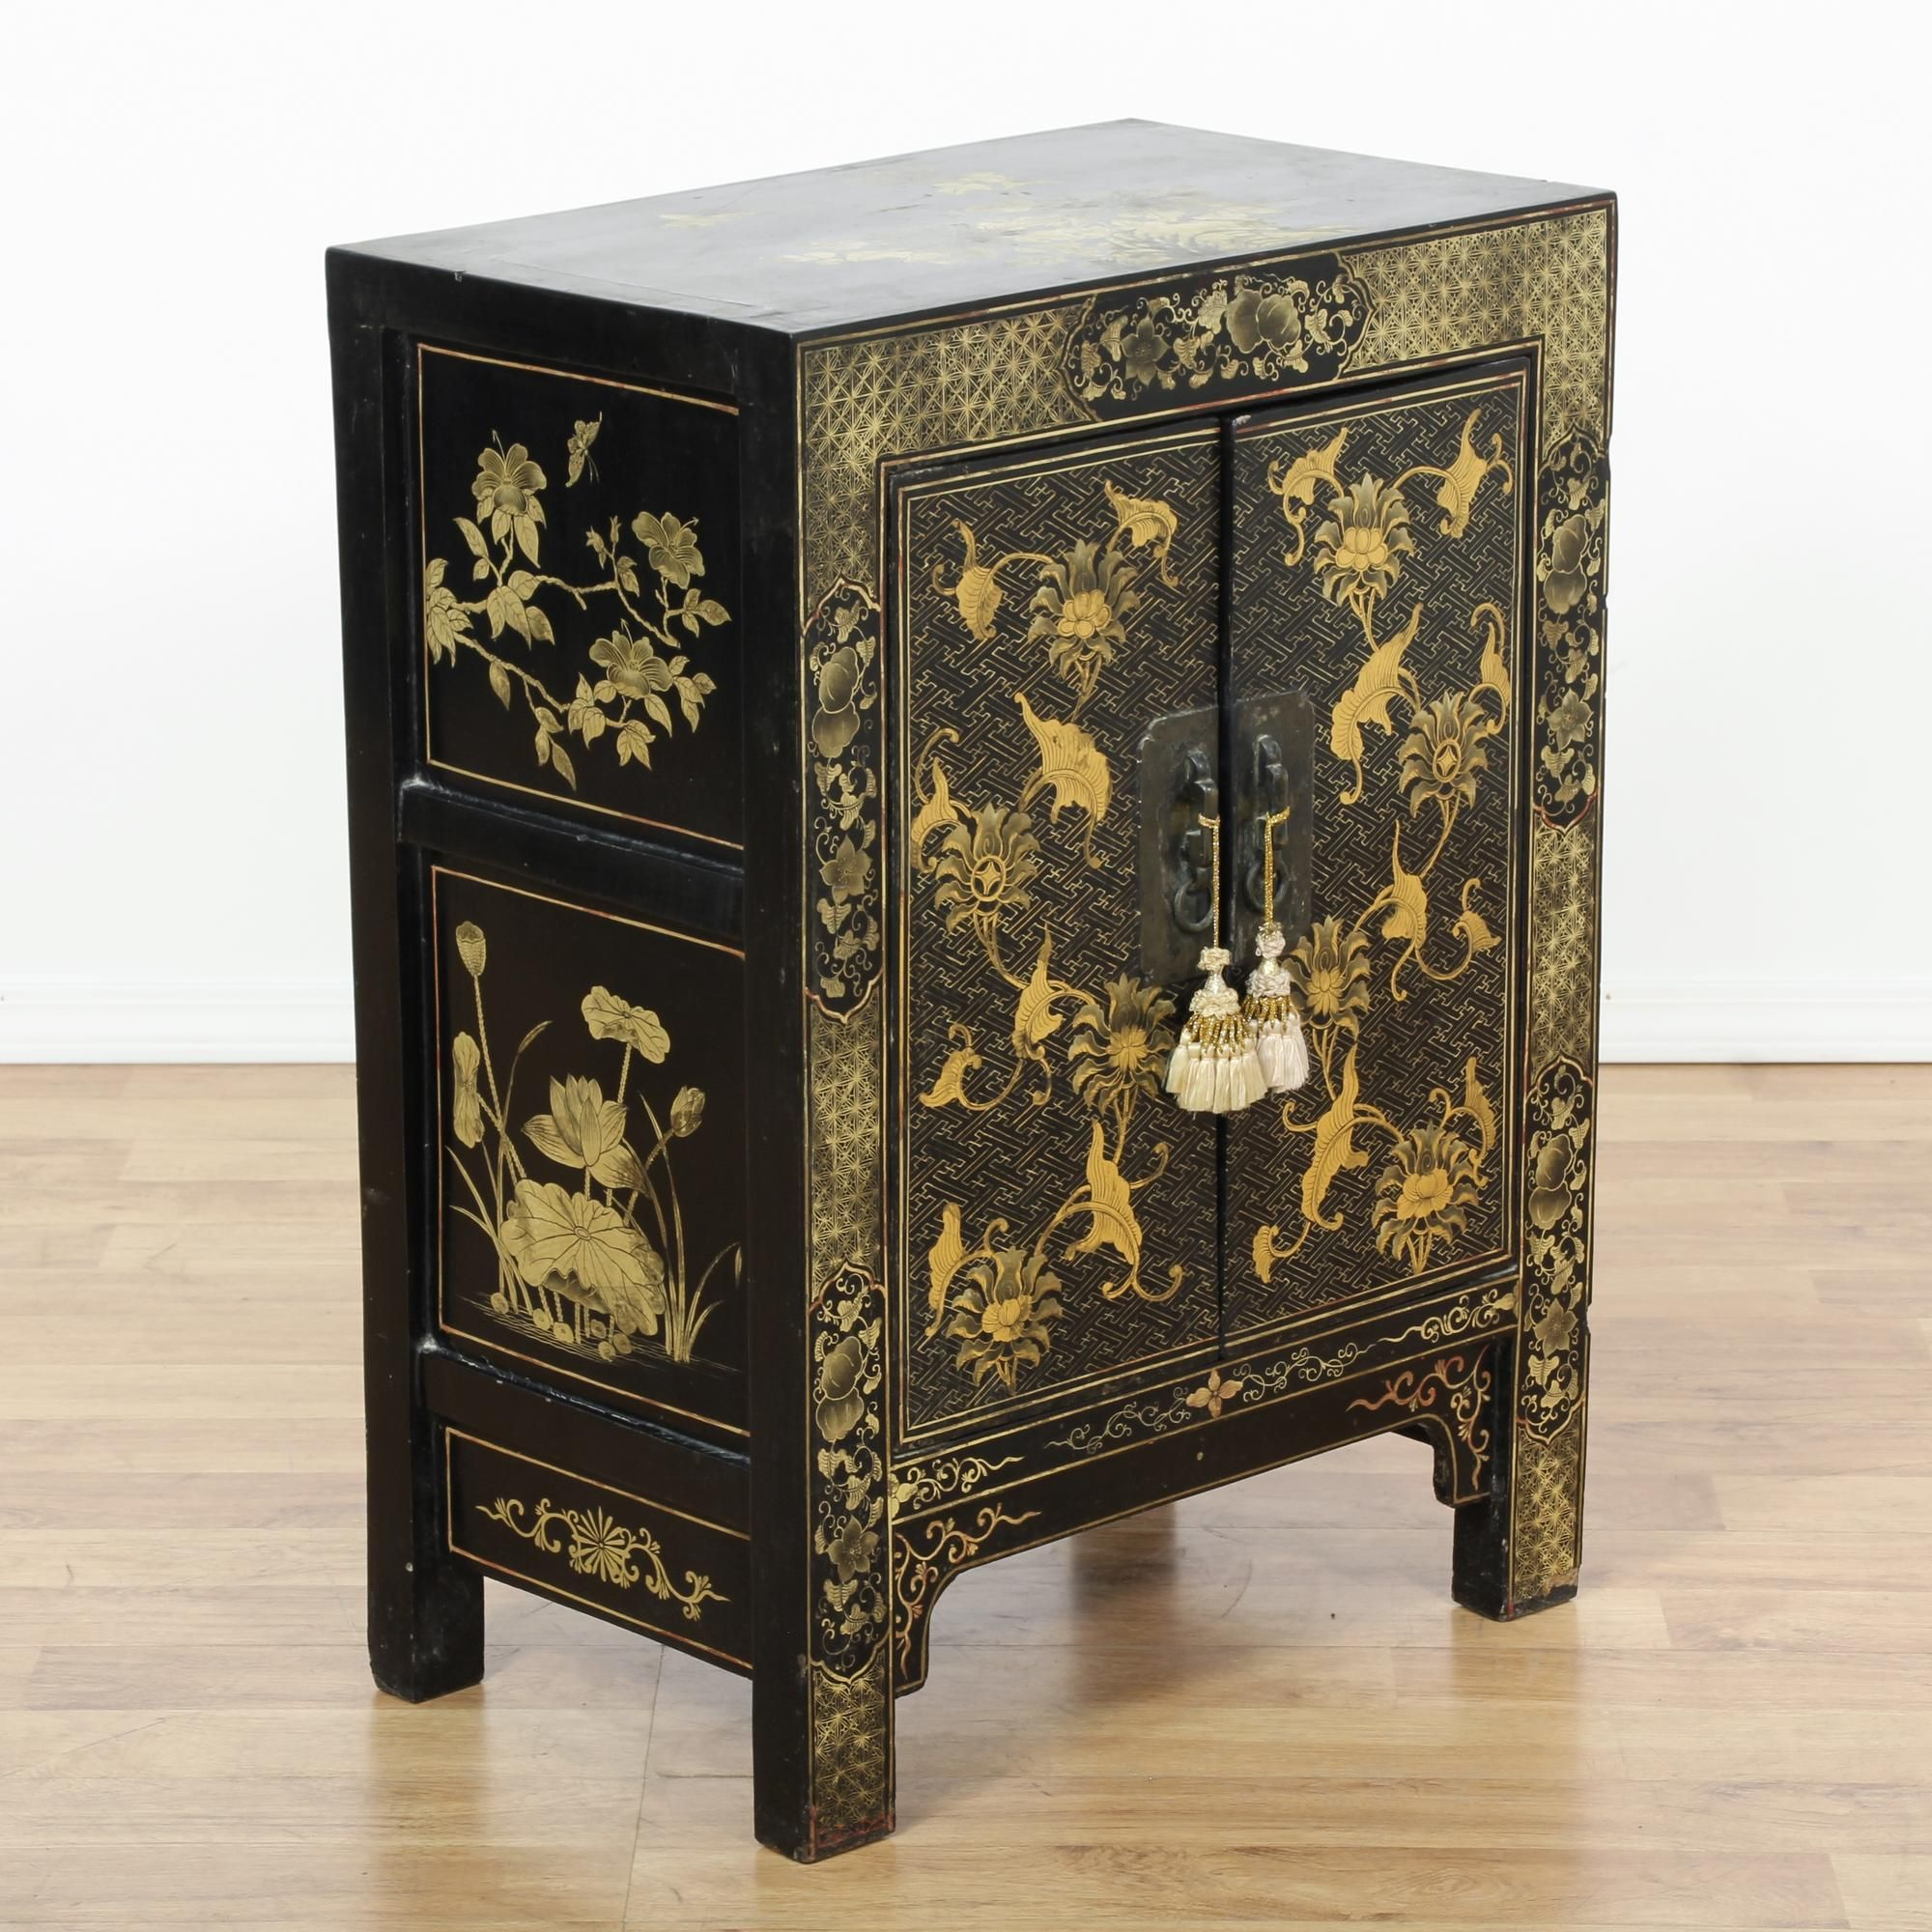 chinese black lacquered ornate floral cabinet  chinese cabinet  - chinese black lacquered ornate floral cabinet